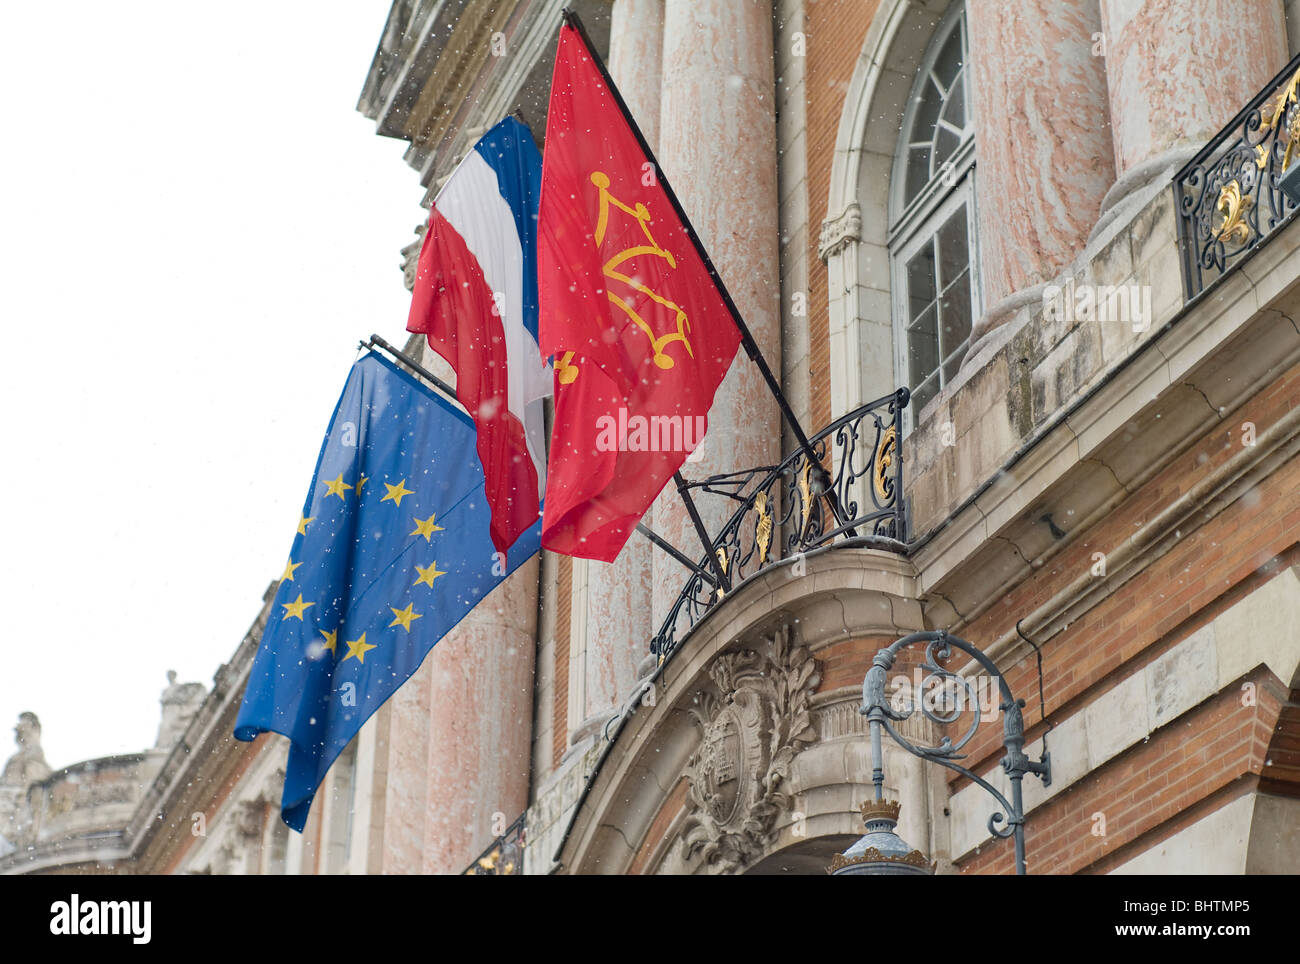 European, French Tricolore and Occitane flags outside the Capitole building, in Toulouse,the regional capital of - Stock Image